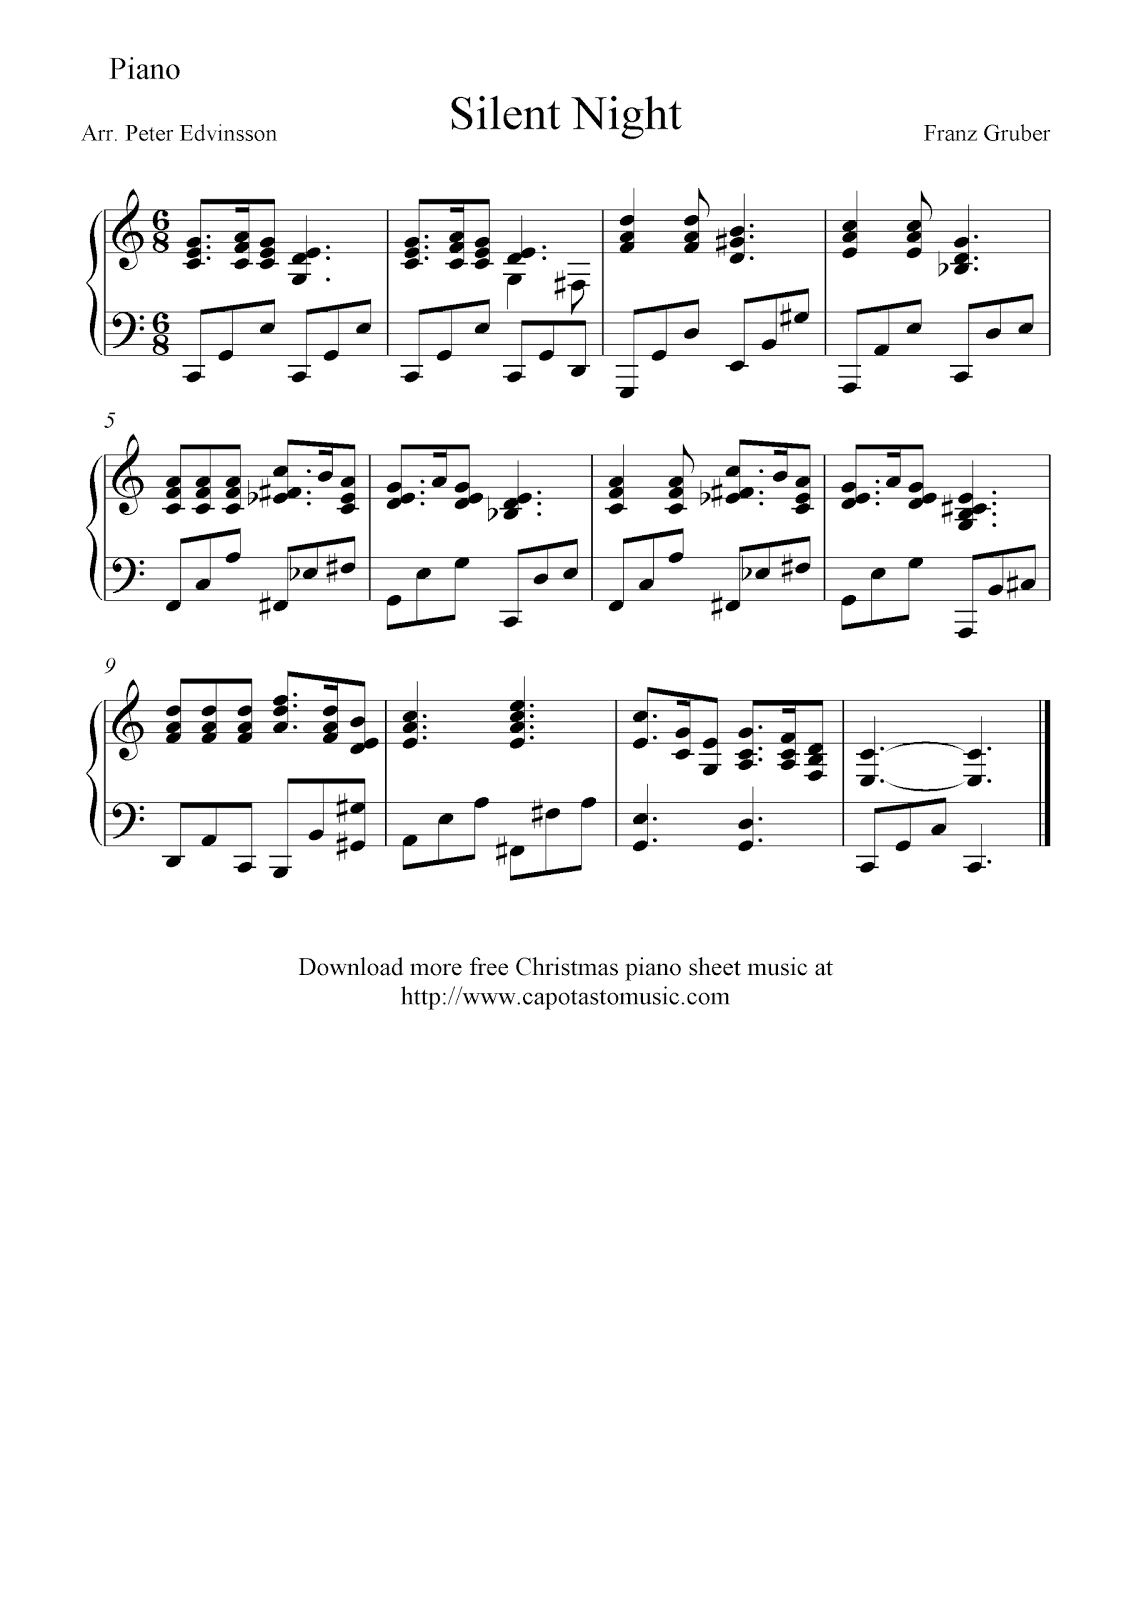 a couple of websites for free christmas sheet music for piano and other instruments httpwwwchristmas carol musicorgindex_of_titleshtml - Free Christmas Sheet Music